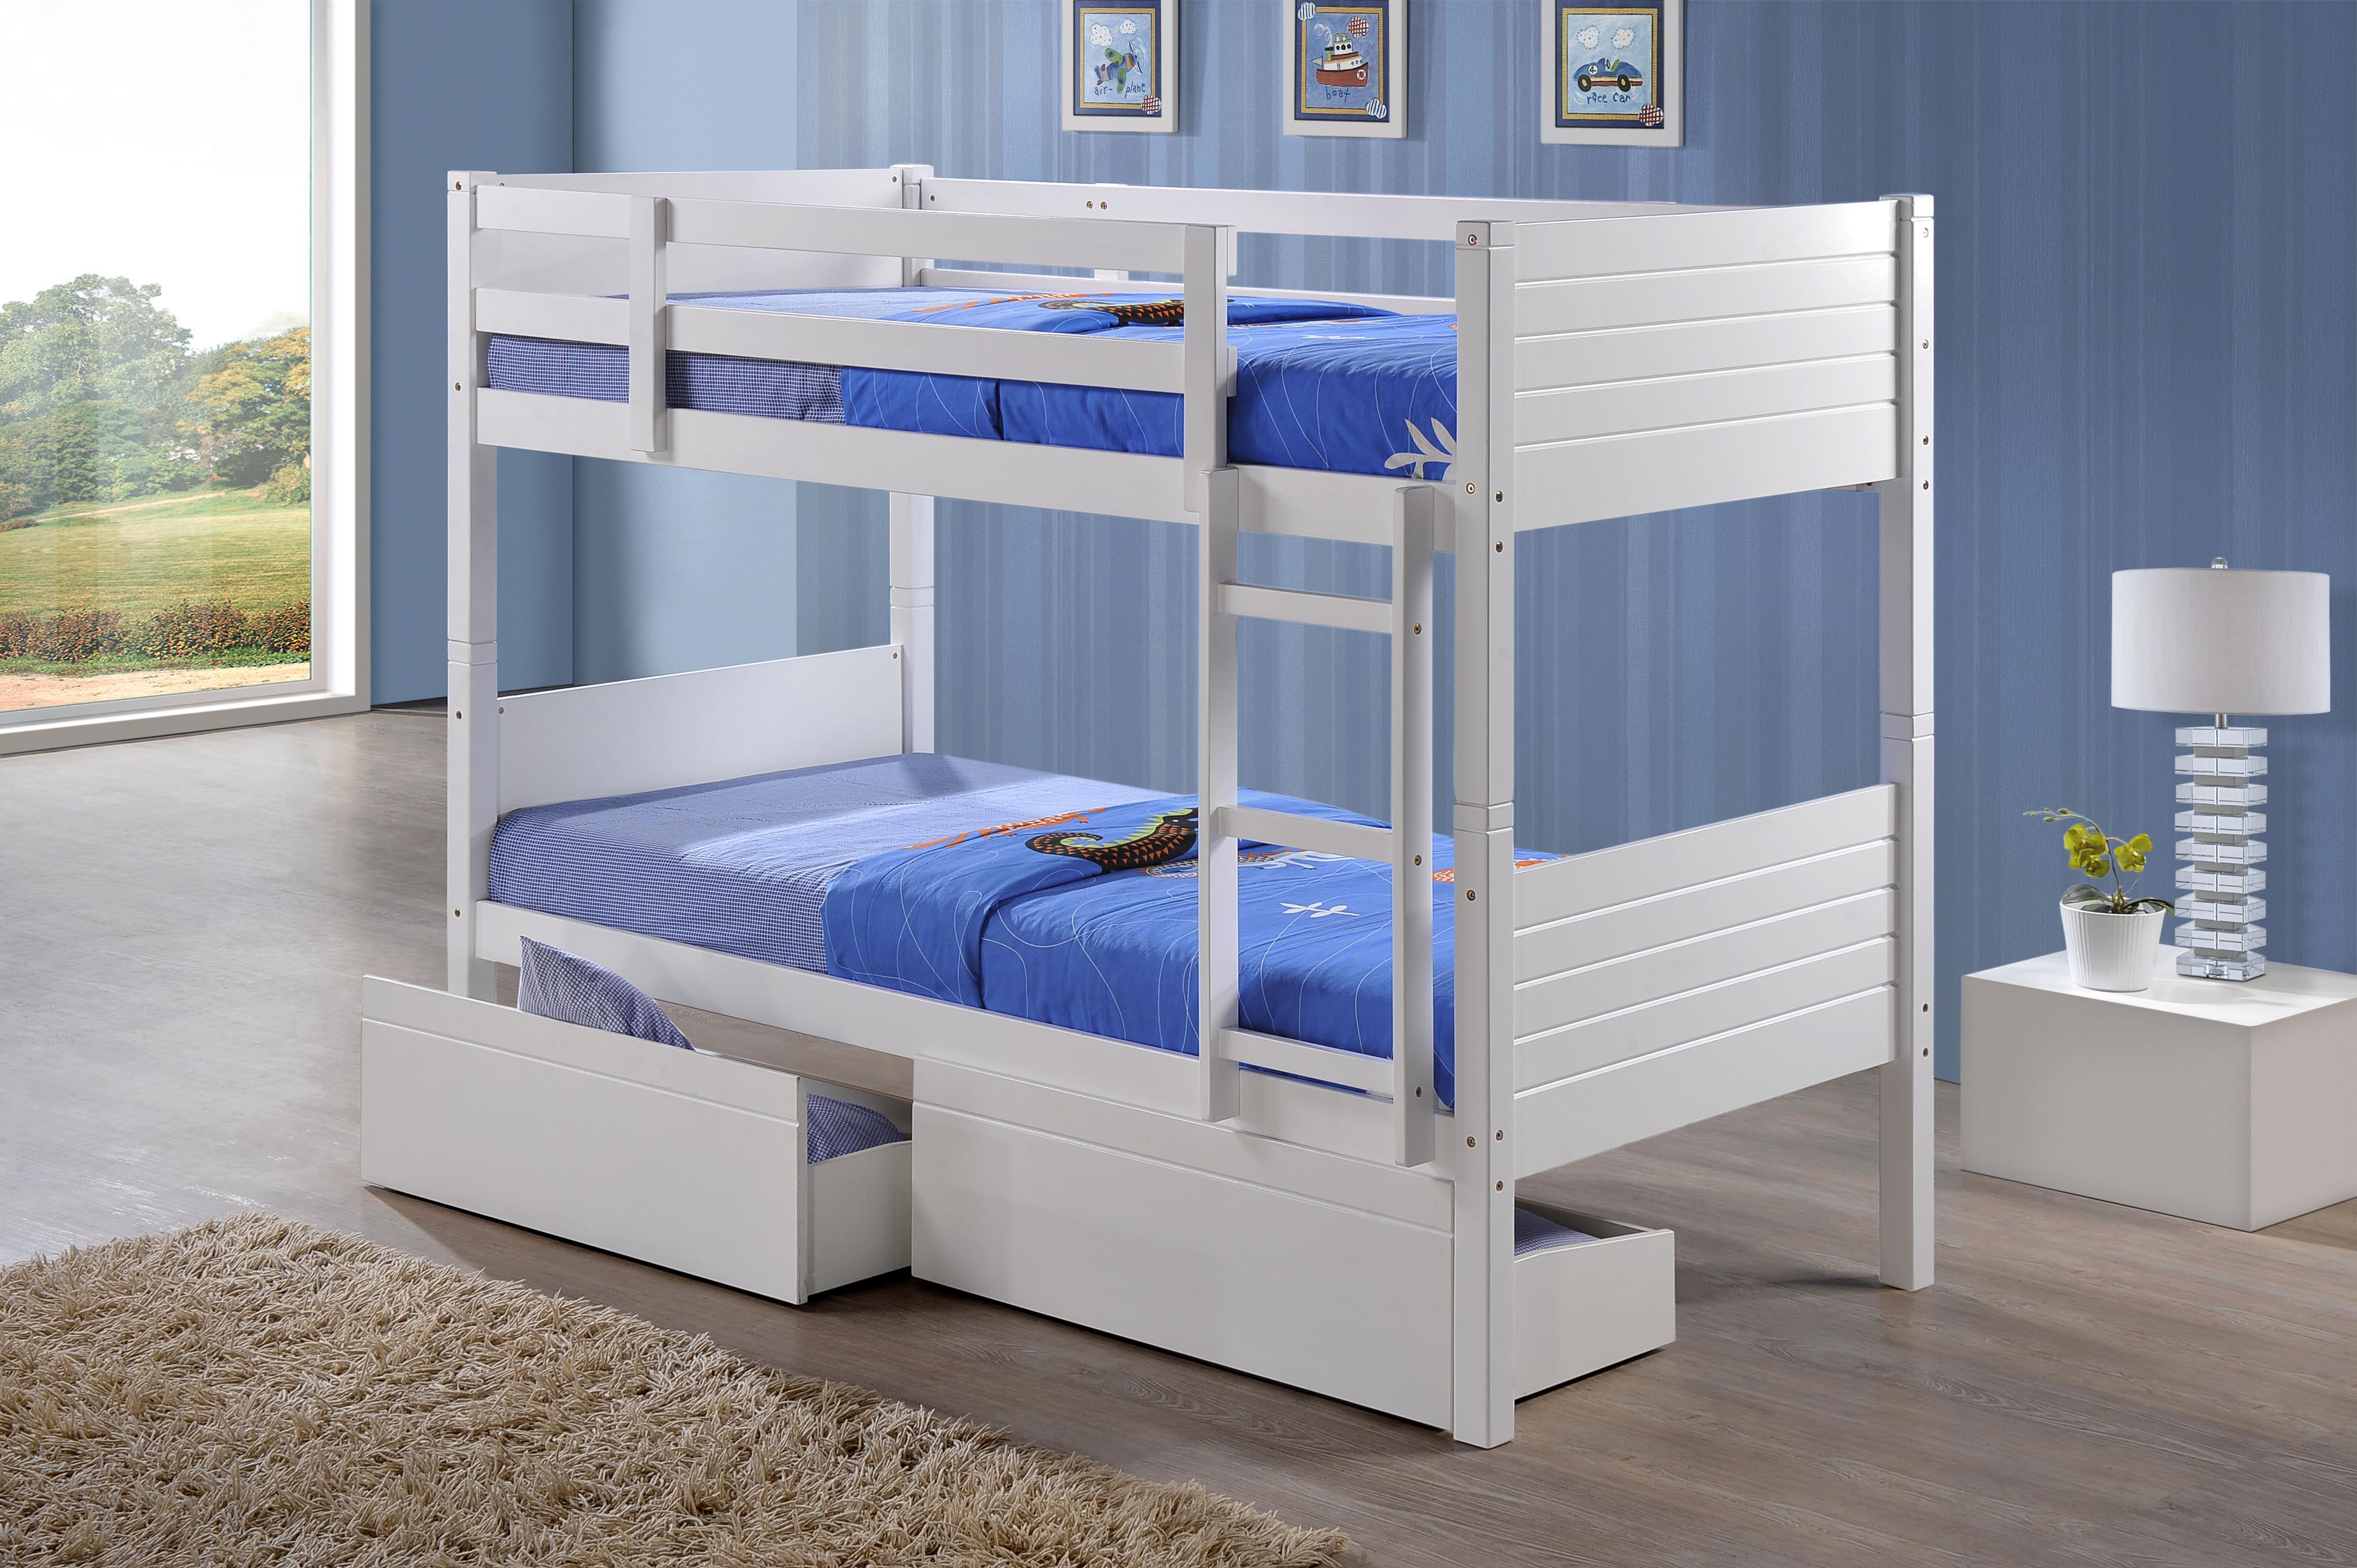 3FT BEDFORD BUNK BED WITH DRAWERS IN WHITE